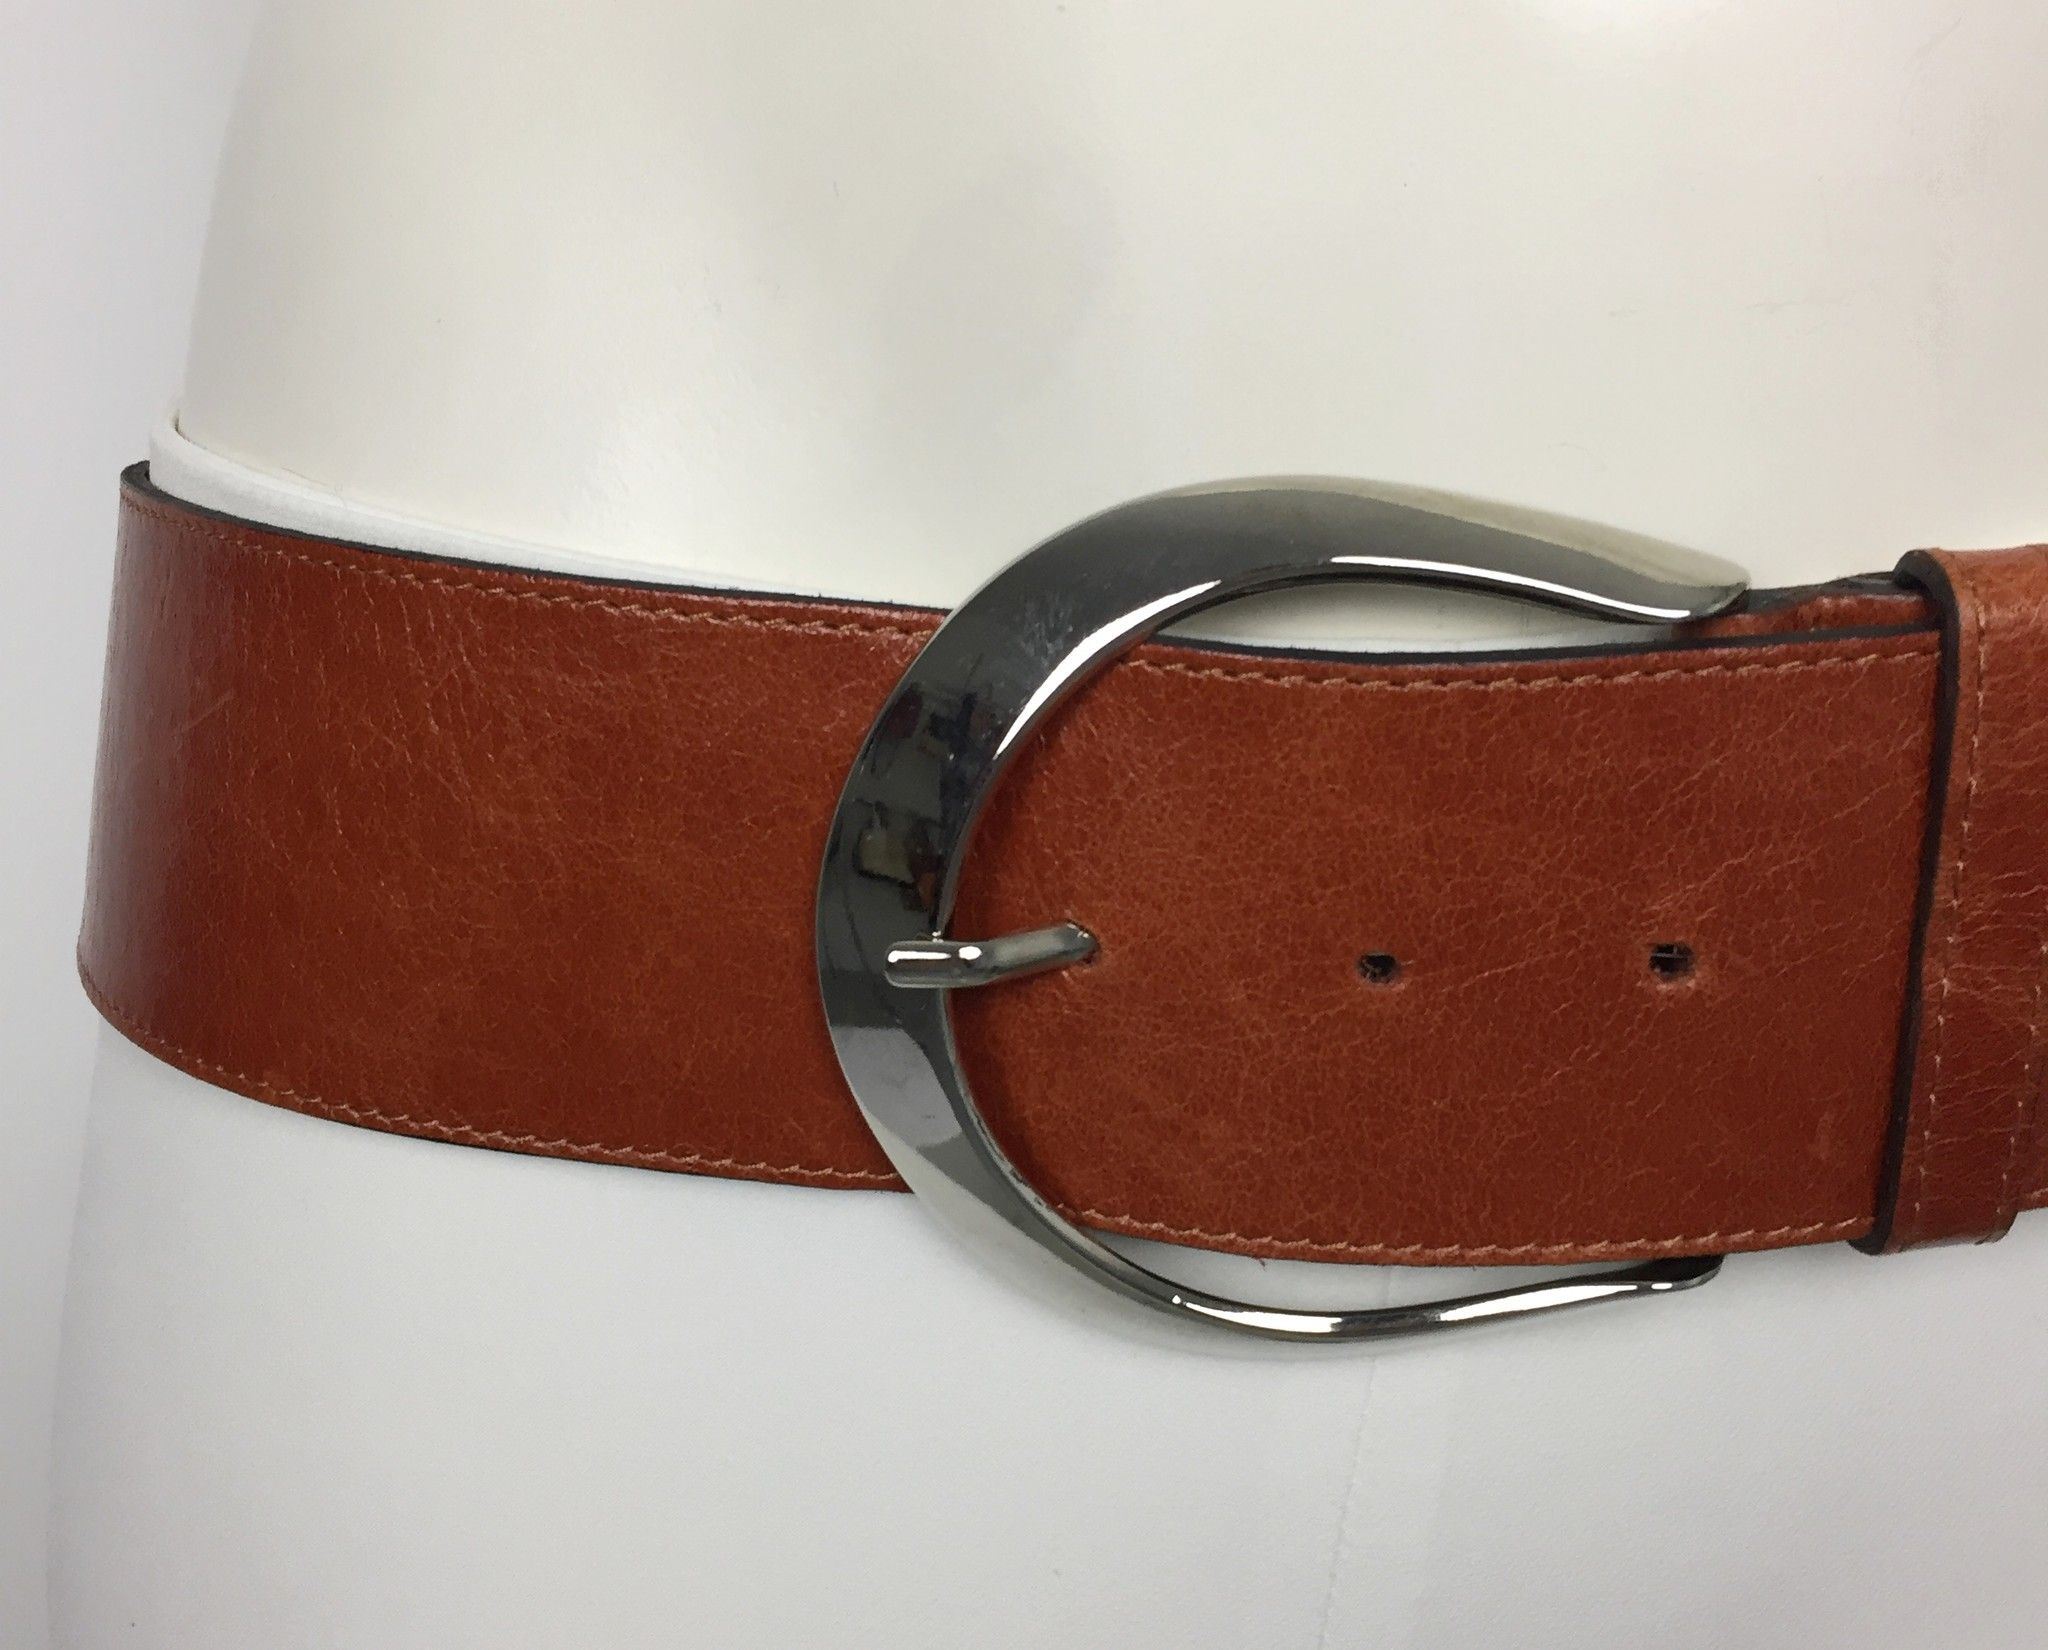 LadyBug Real Leather Belt with Round Steel Buckle Cod.25784